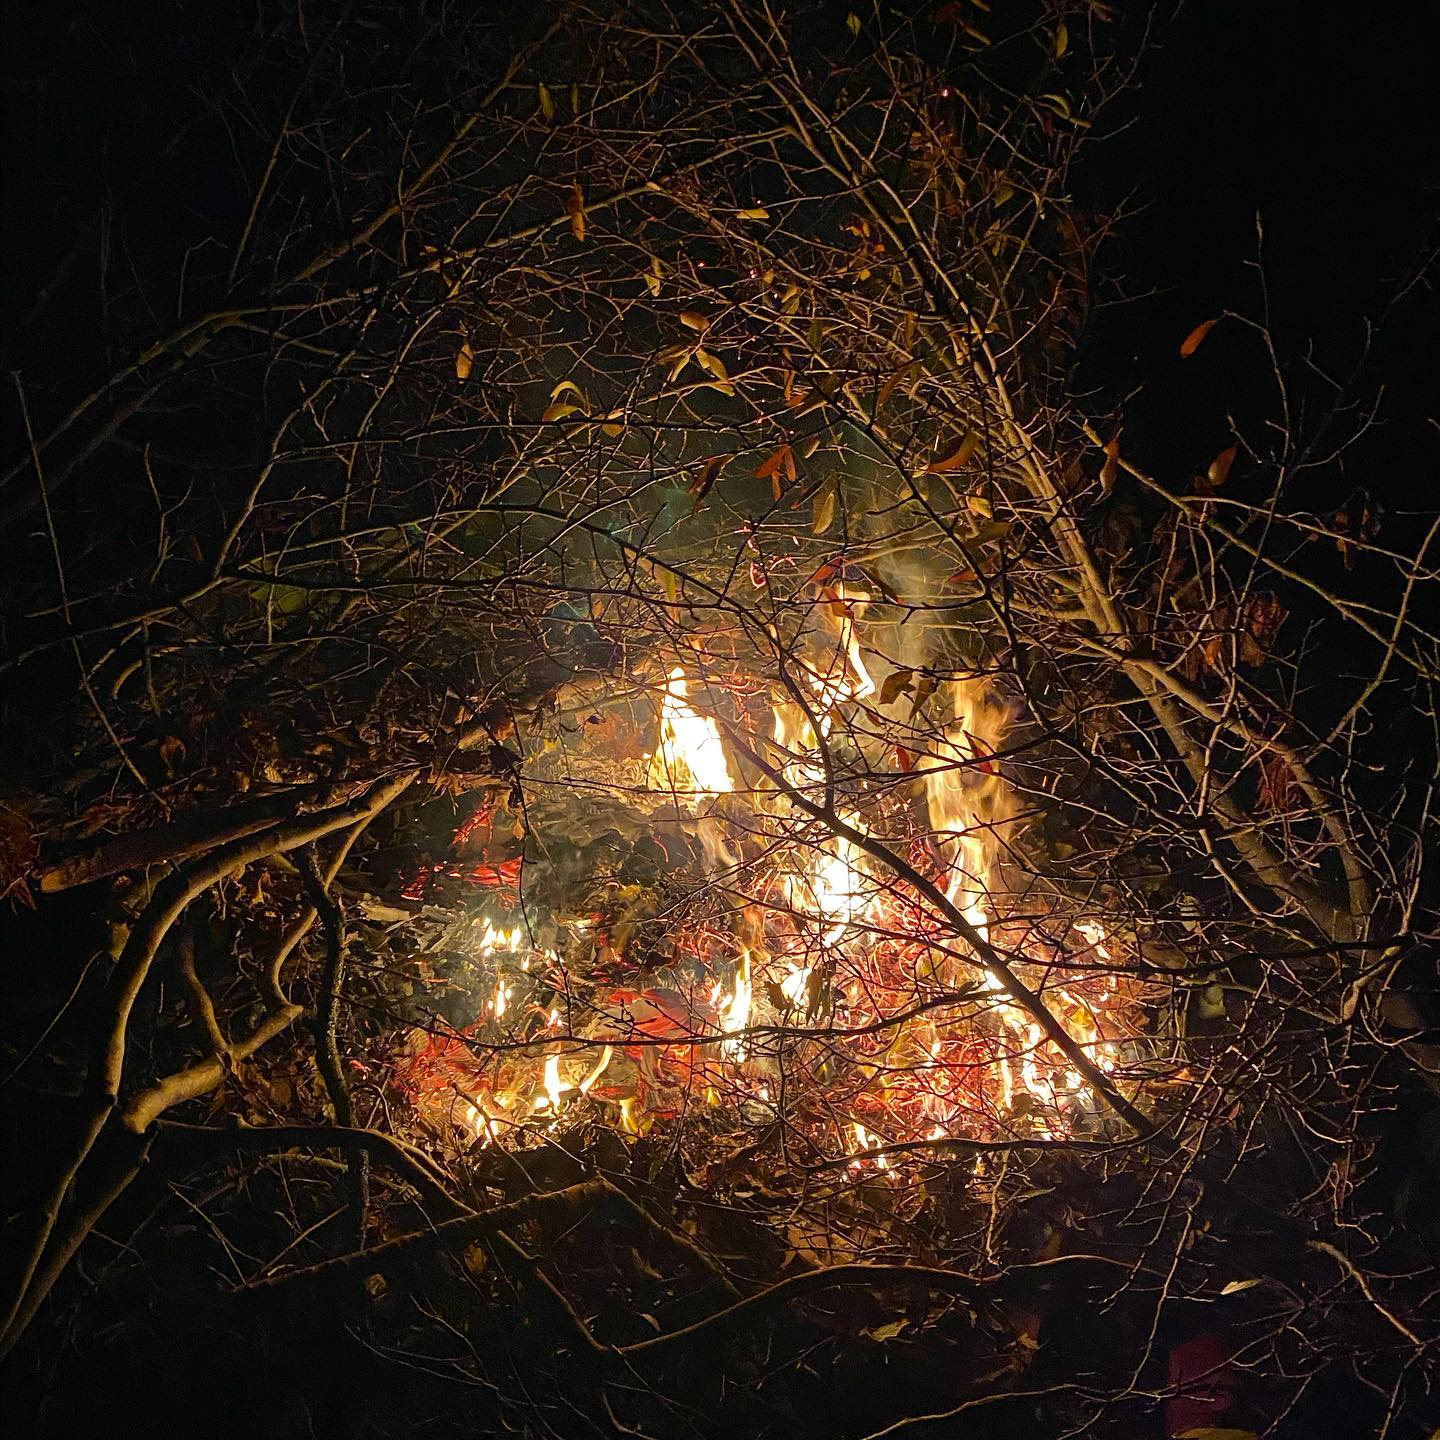 Bonfire night was a much smaller affair at home this year